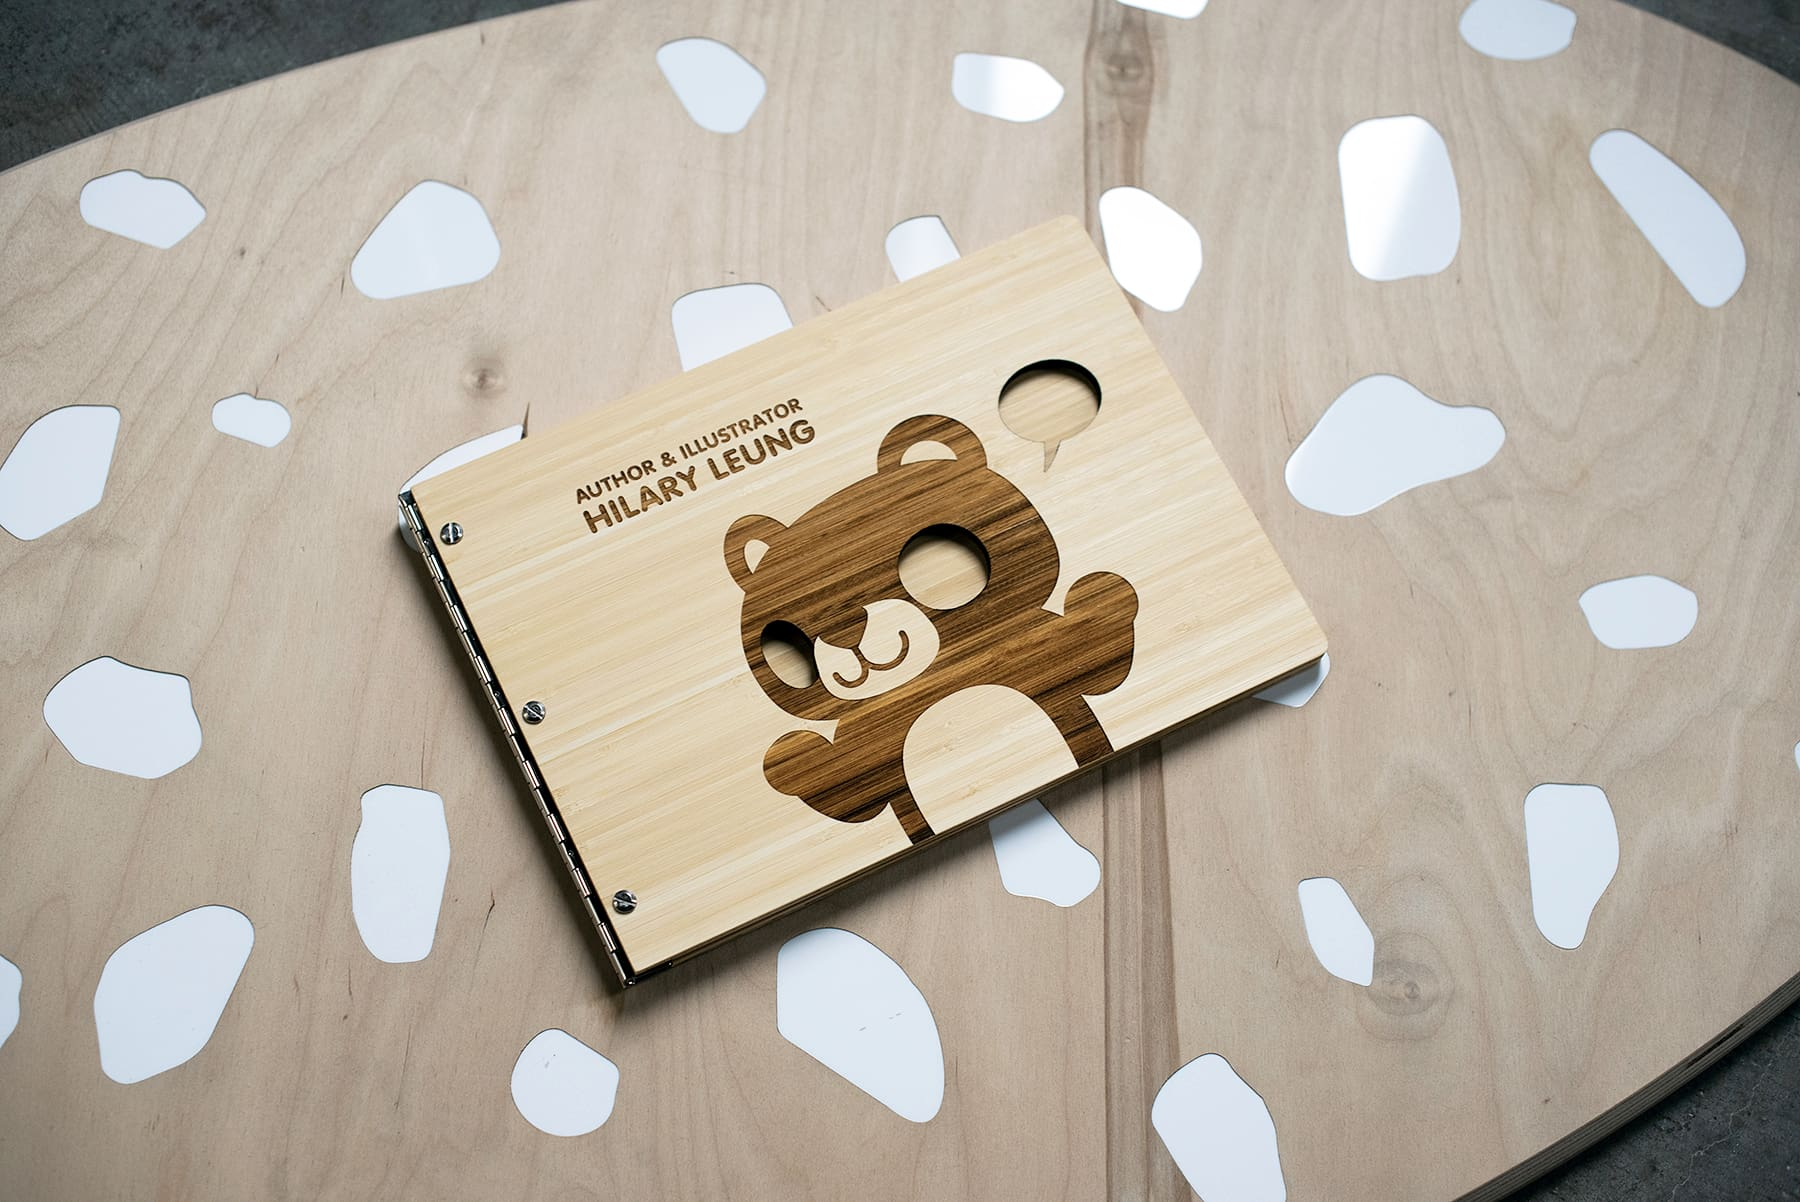 Engraved wooden illustrator book